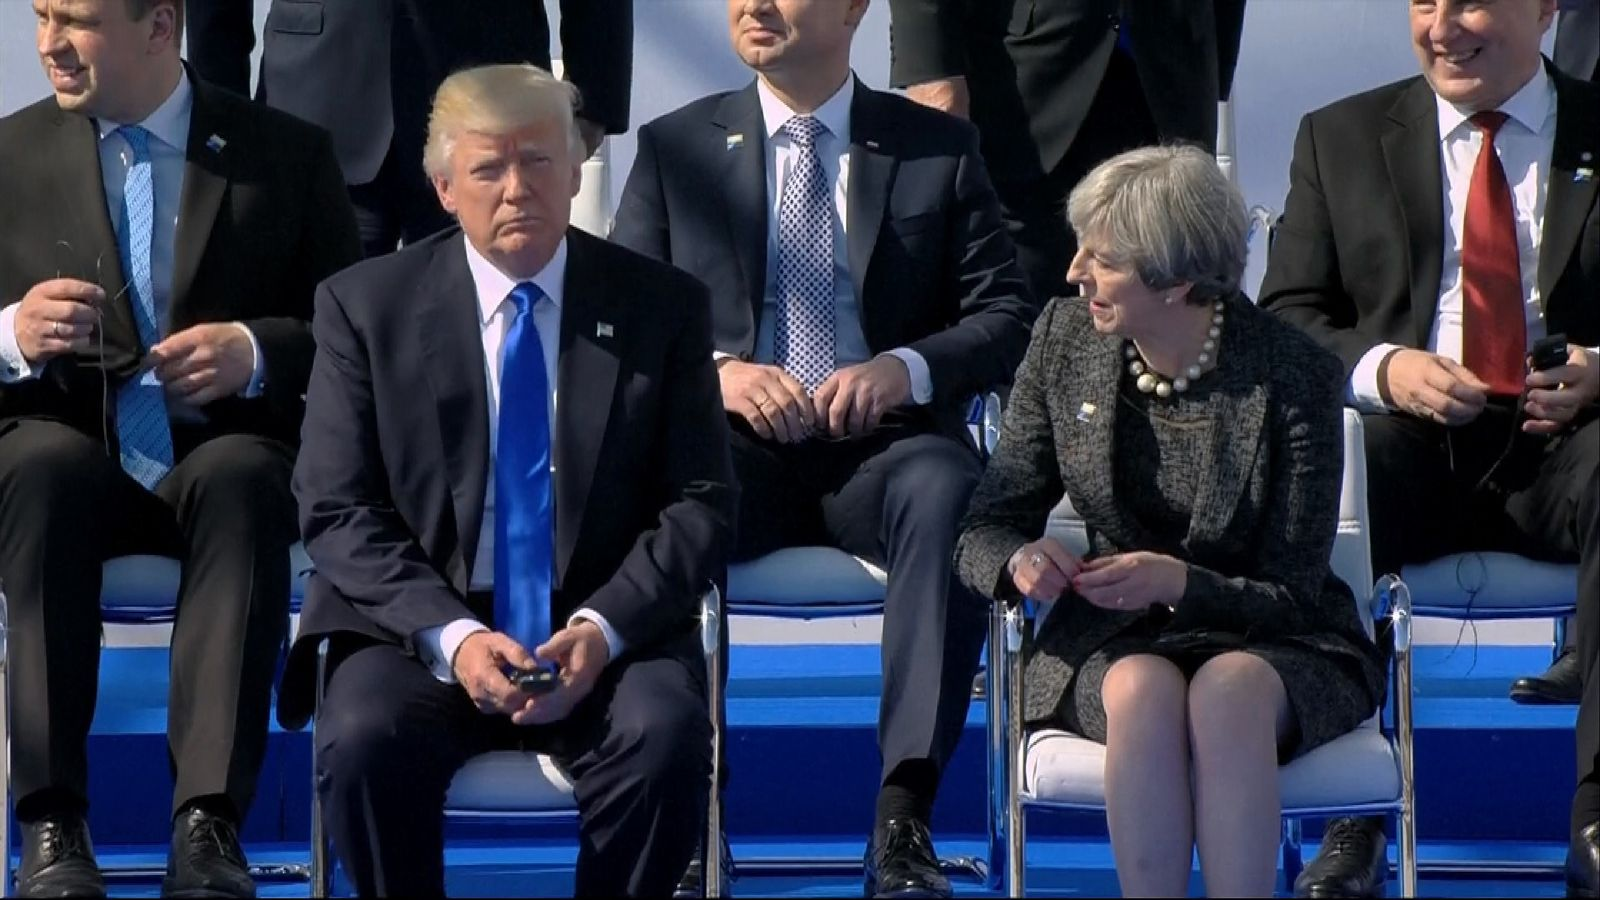 Theresa May to confront Trump on Manchester attack leaks